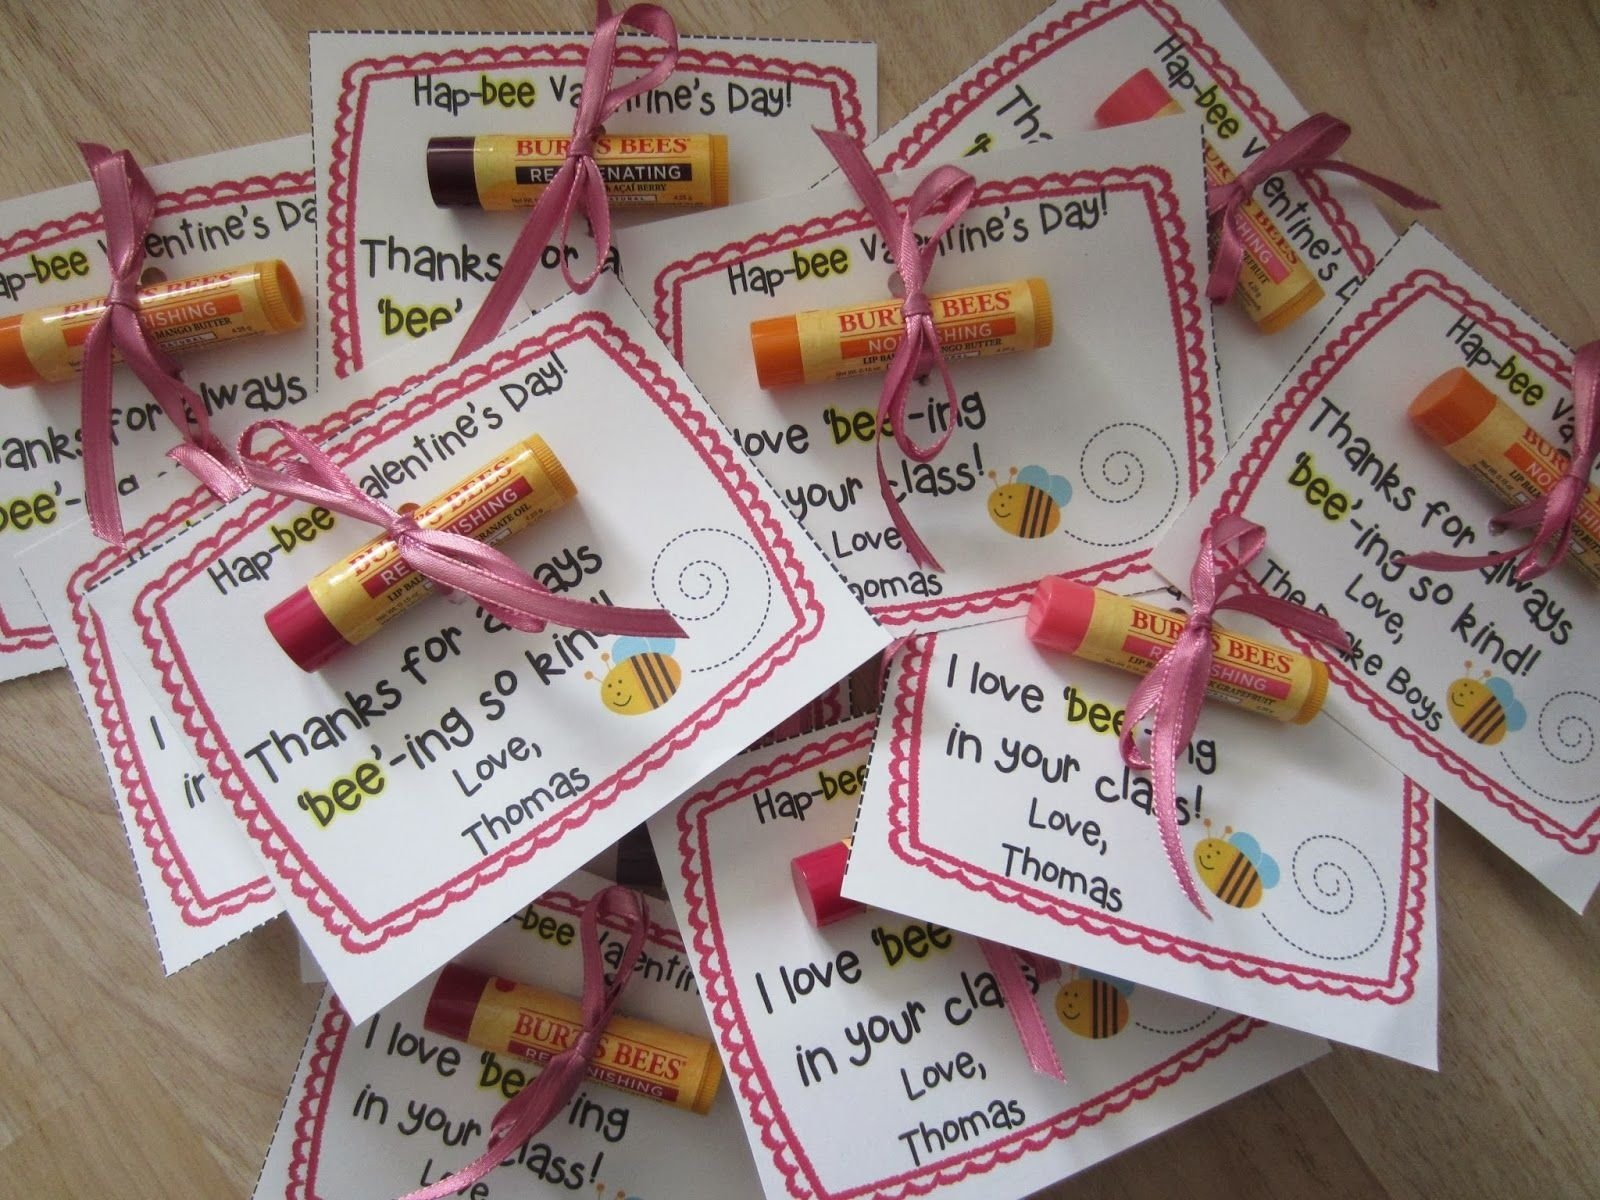 10 Cute Gift Ideas For Daycare Teachers the teacher ta ones say i love bee ing & 10 Cute Gift Ideas For Daycare Teachers 2019